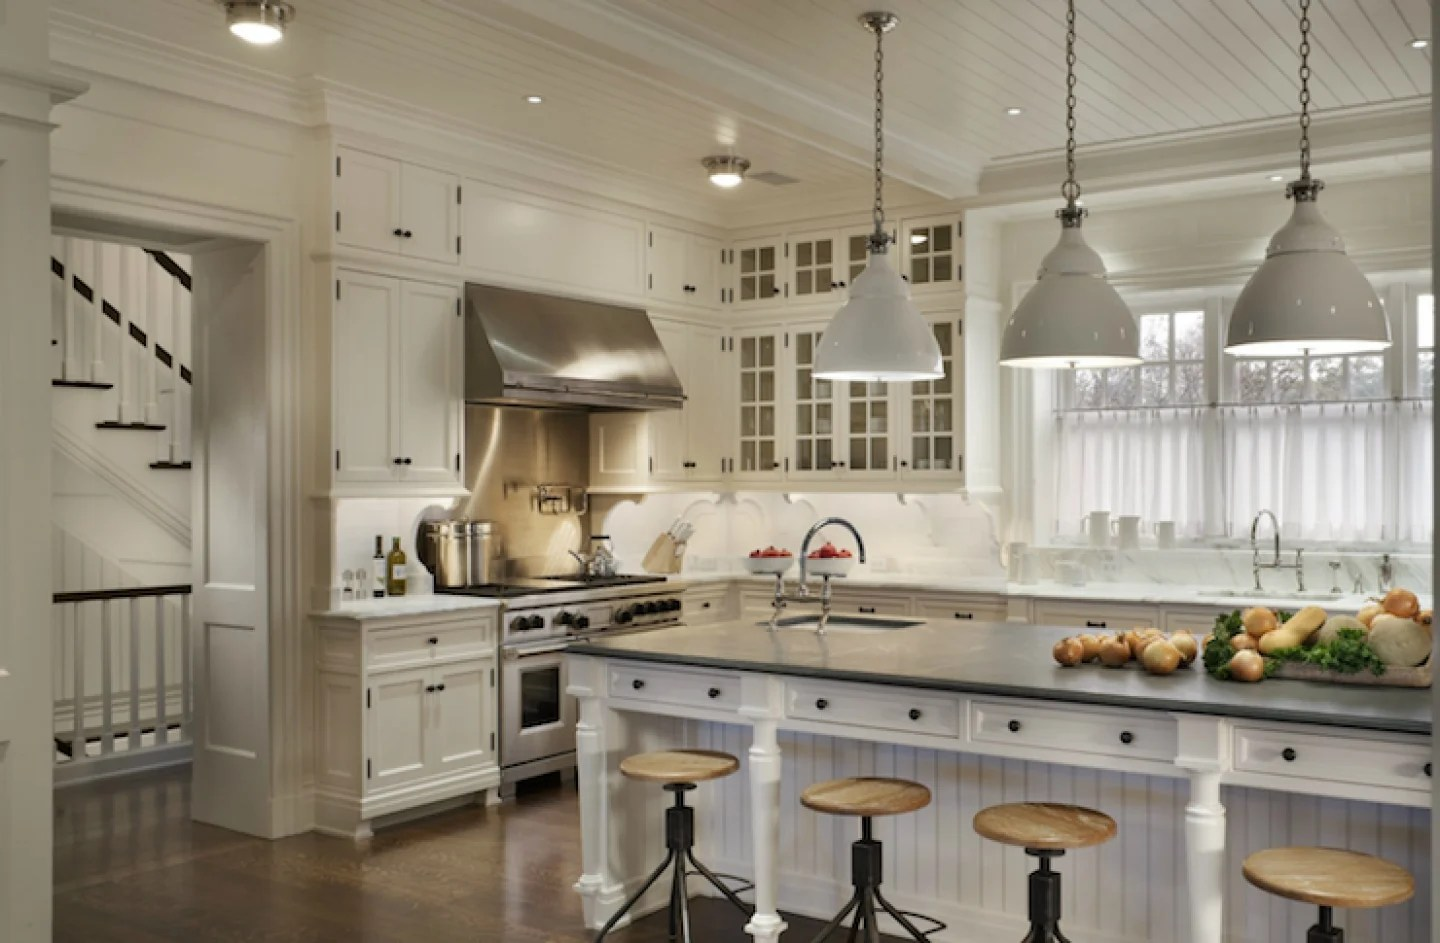 Kitchen Design Cabinets Examples 20 Beautiful Examples Of Farmhouse Kitchen Design